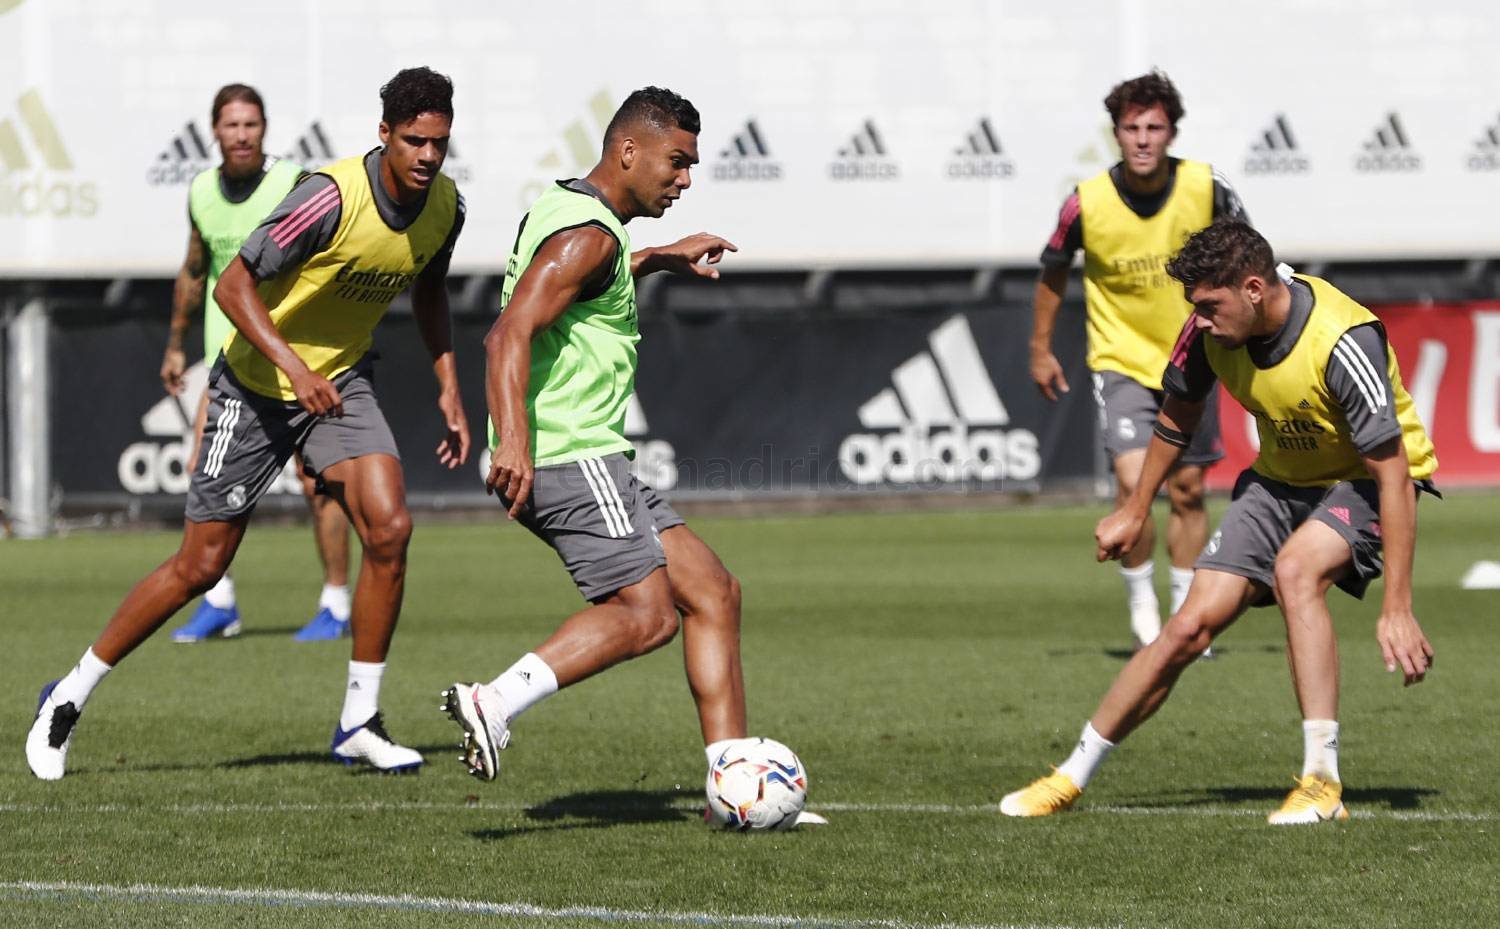 Real Madrid - Entrenamiento del Real Madrid  - 13-09-2020